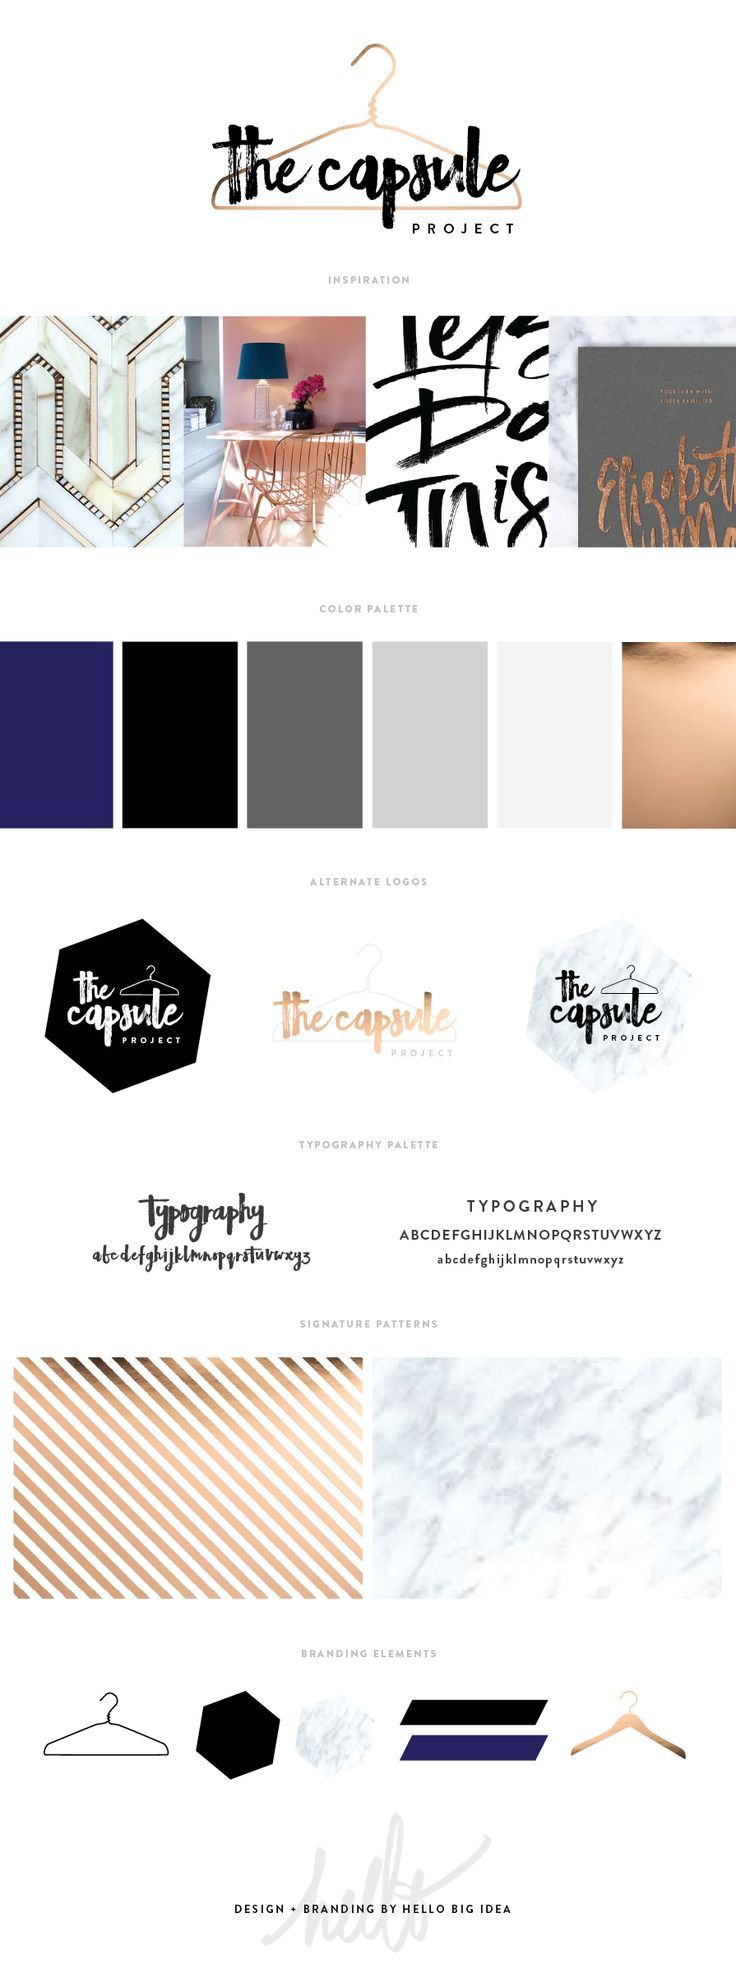 The capsule project style guide brand blog design by hello big